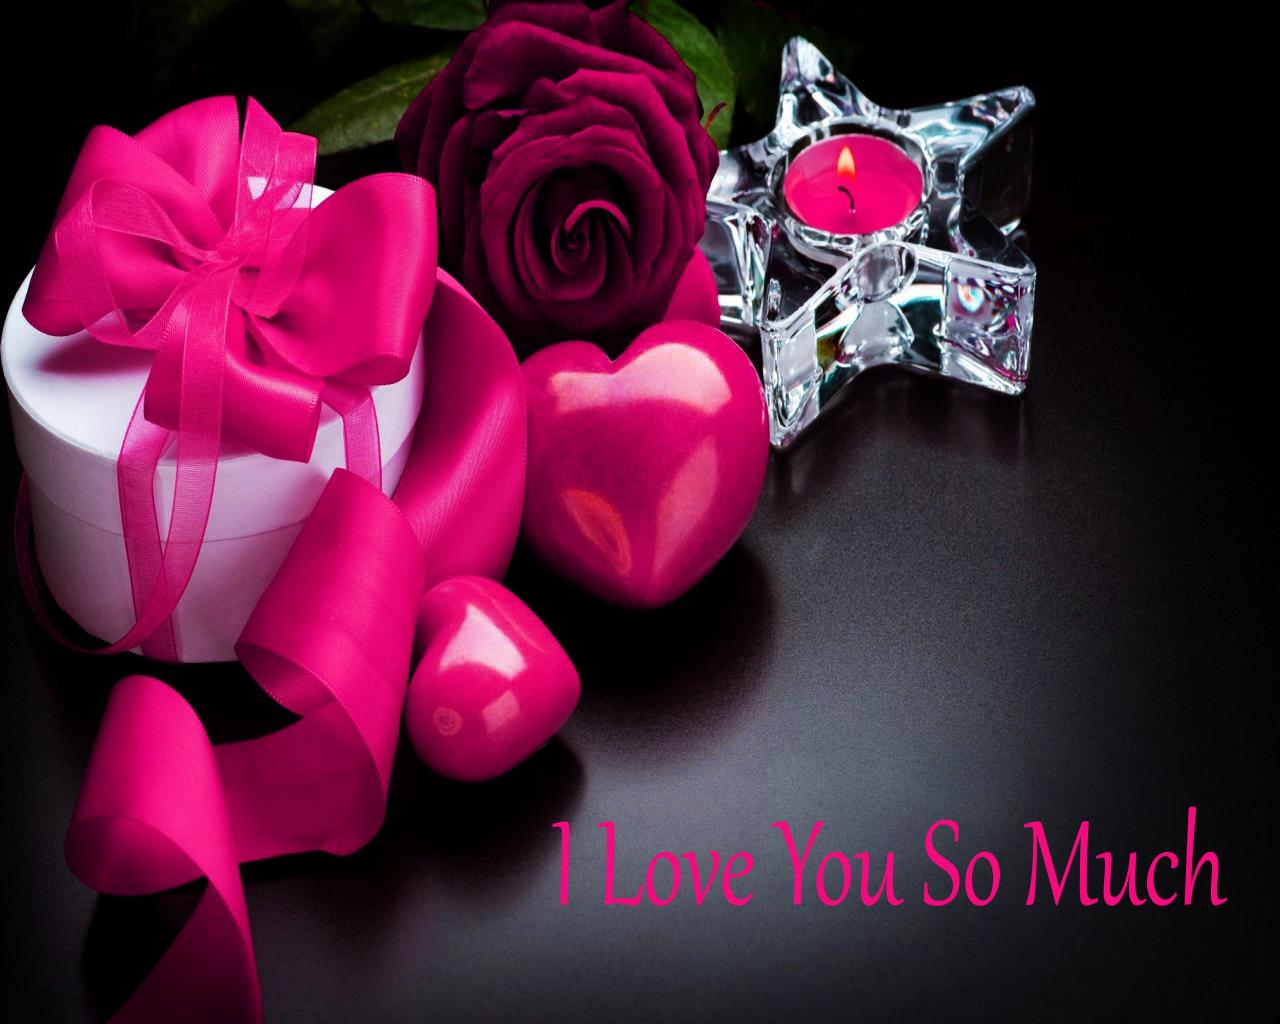 download i love you wallpaper hd download gallery